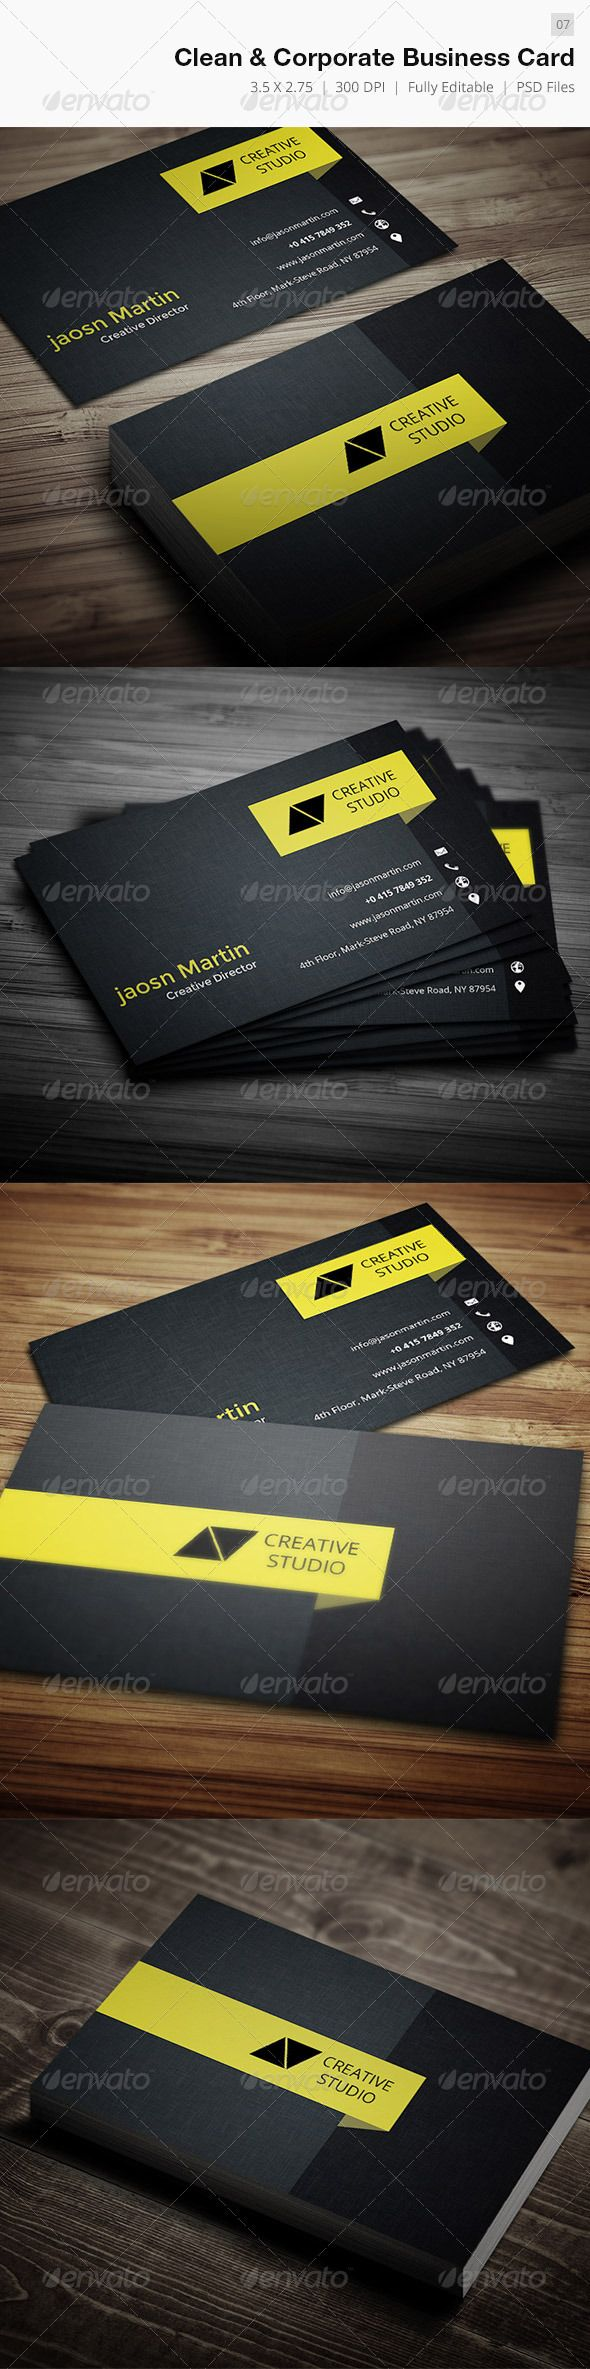 648 best cool business cards images on pinterest fonts arrows 648 best cool business cards images on pinterest fonts arrows and black roses magicingreecefo Gallery